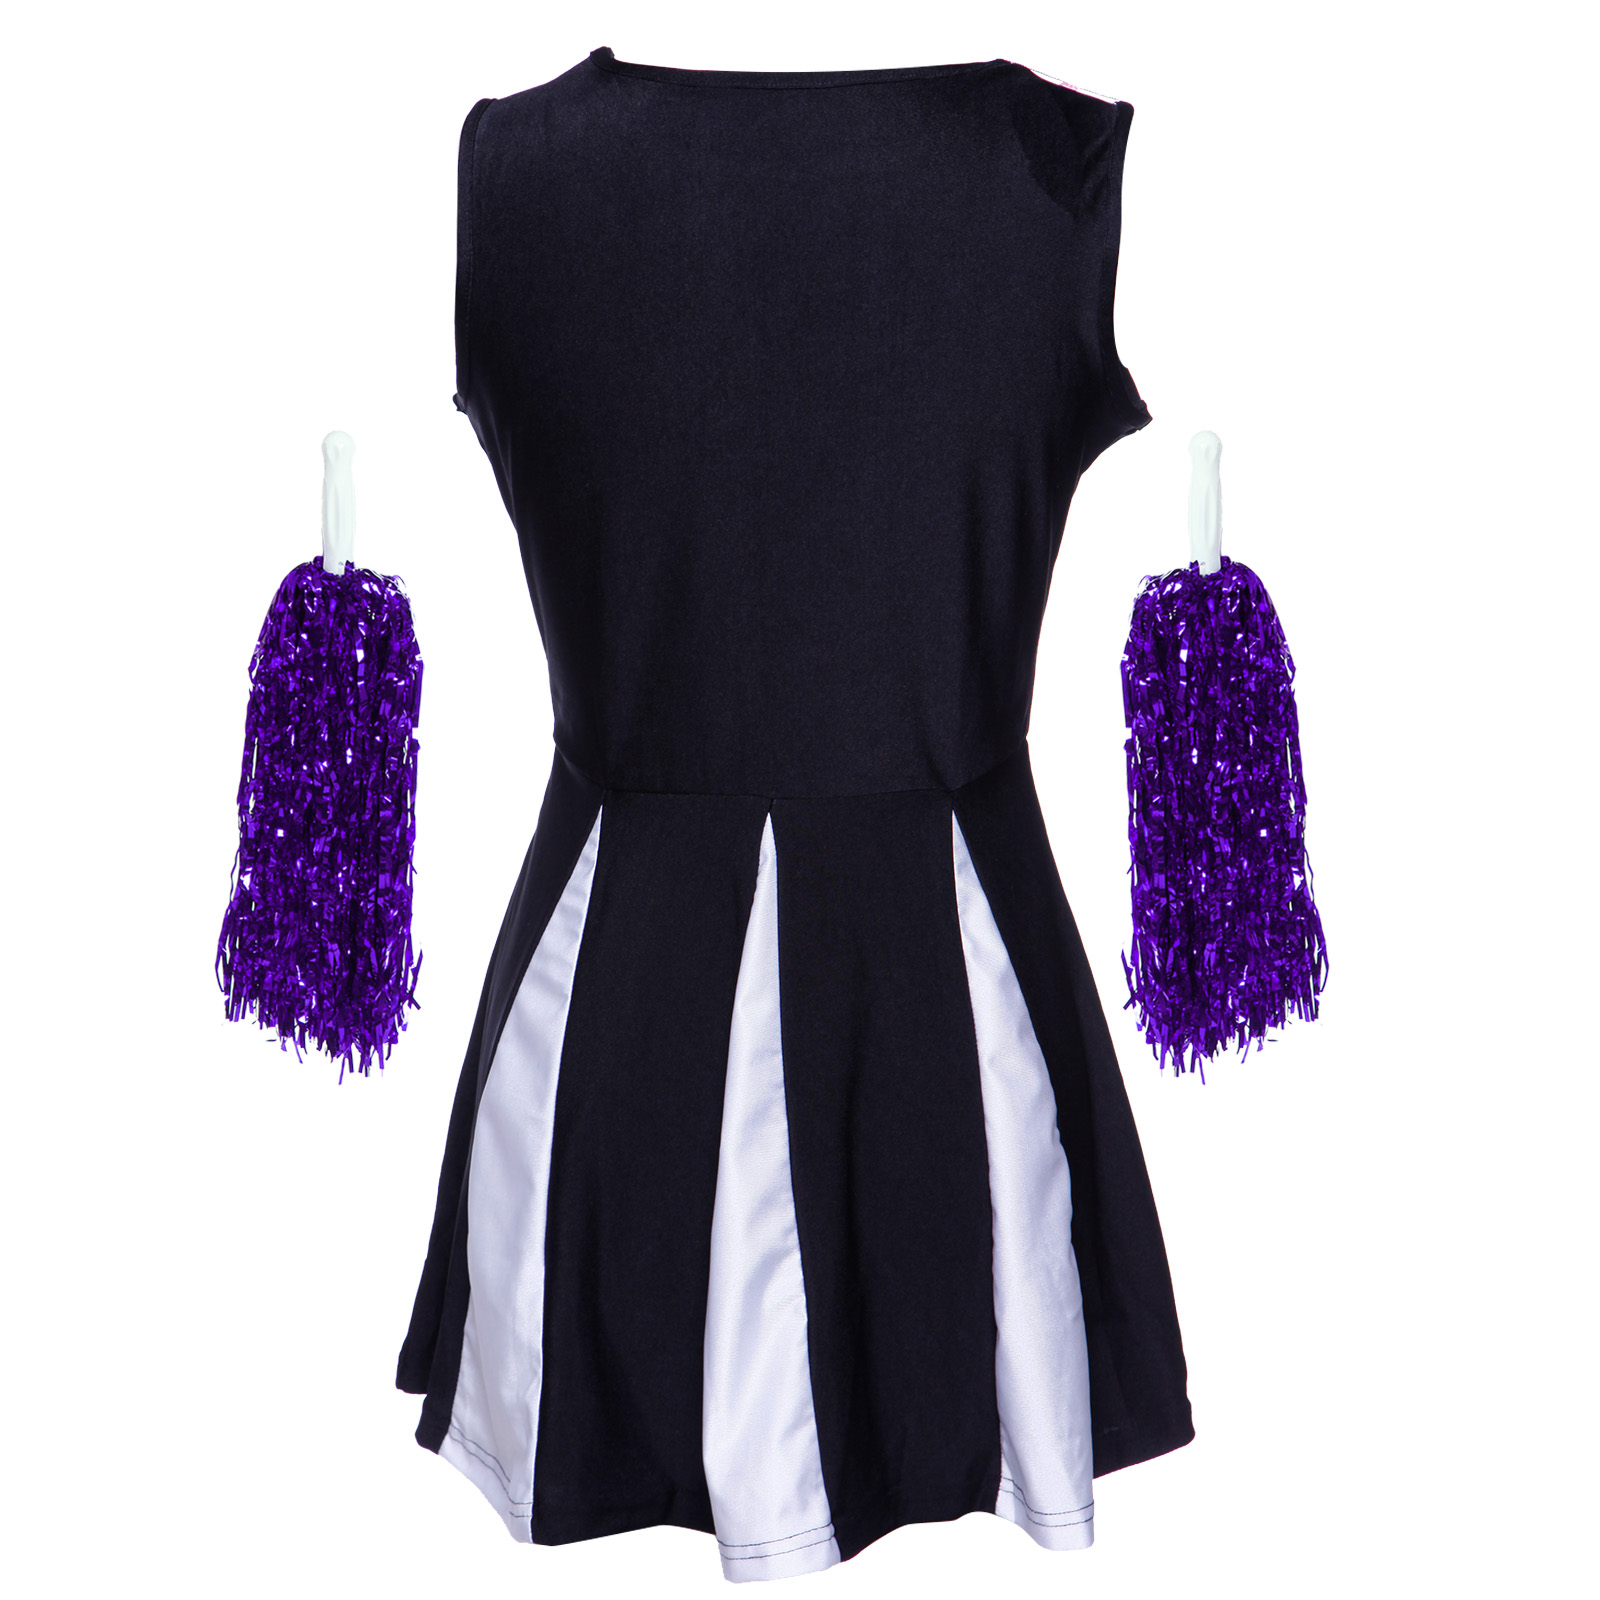 Cheerleader-Fancy-Dress-Outfit-High-School-Musical-Cheer-Uniform-Costume-Pompoms miniature 8